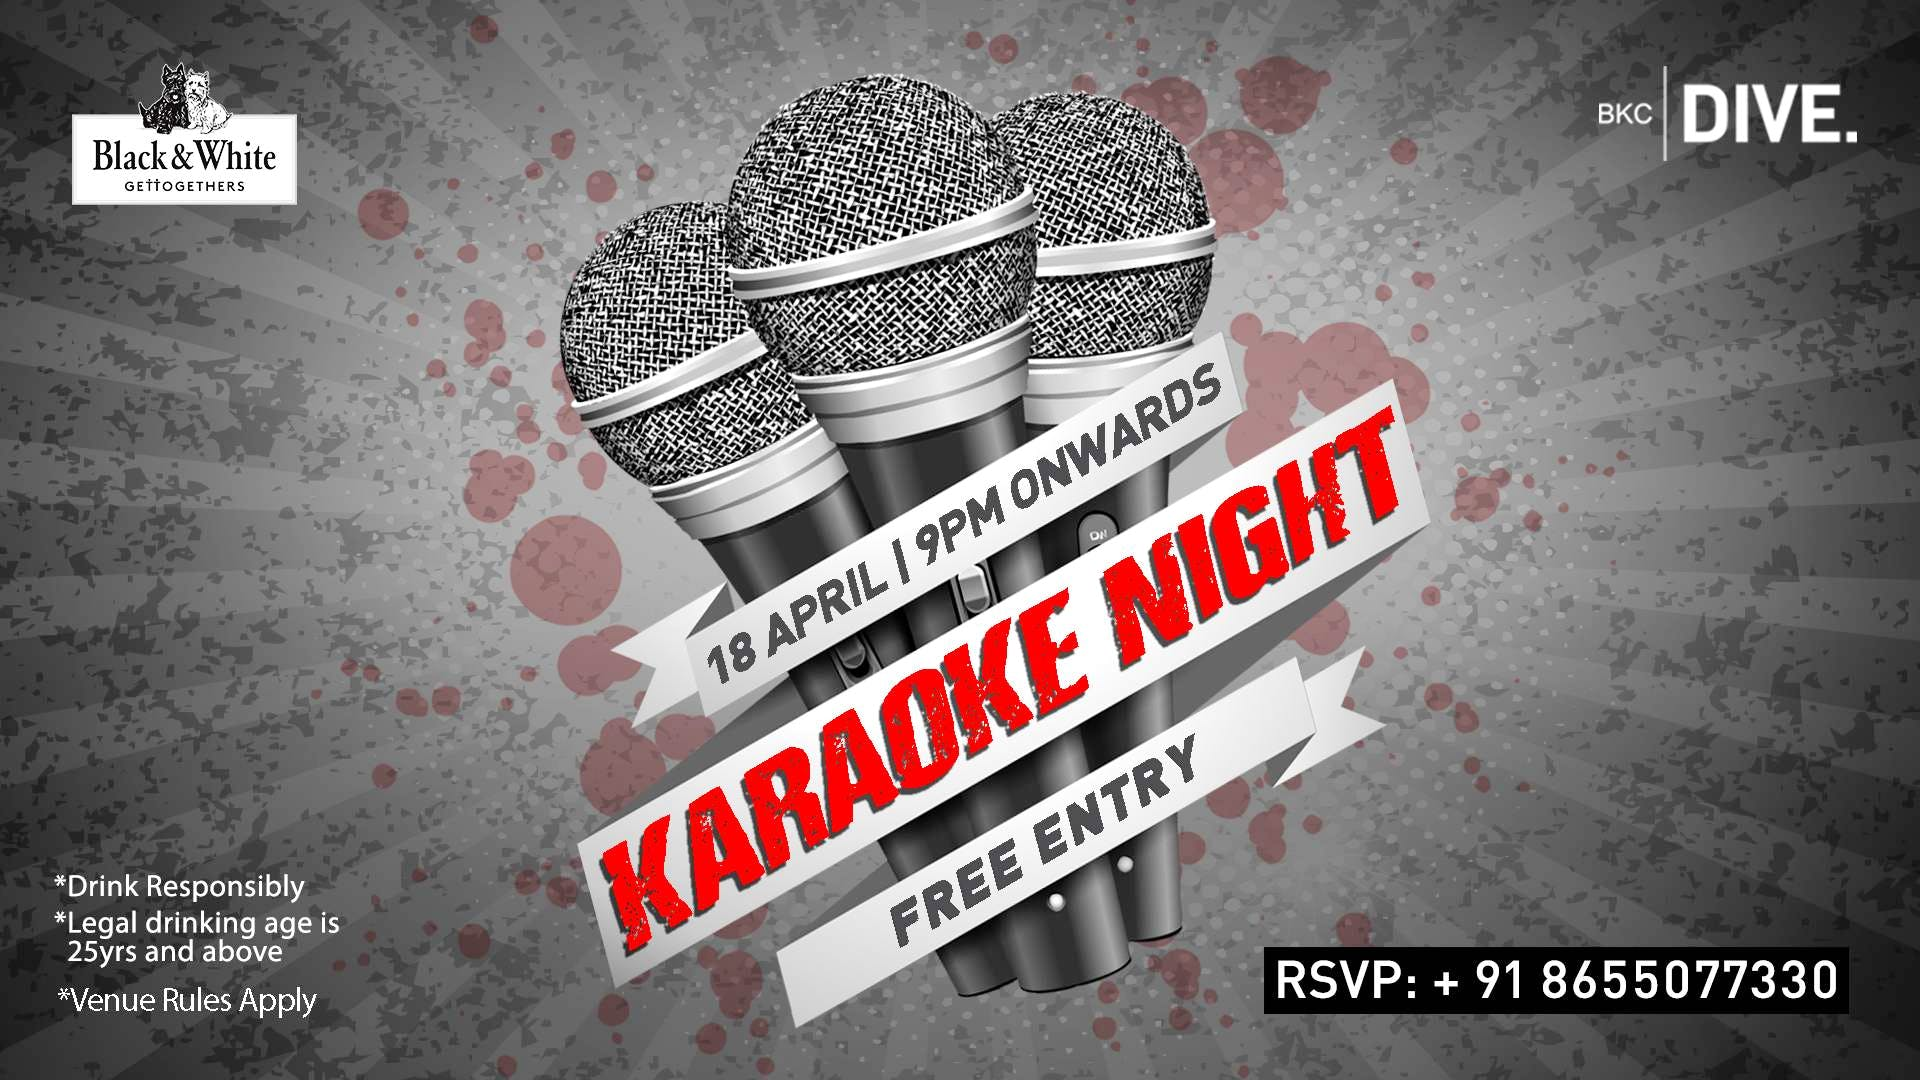 Black and White Nights presents Karaoke Night at BKC Dive this Thursday